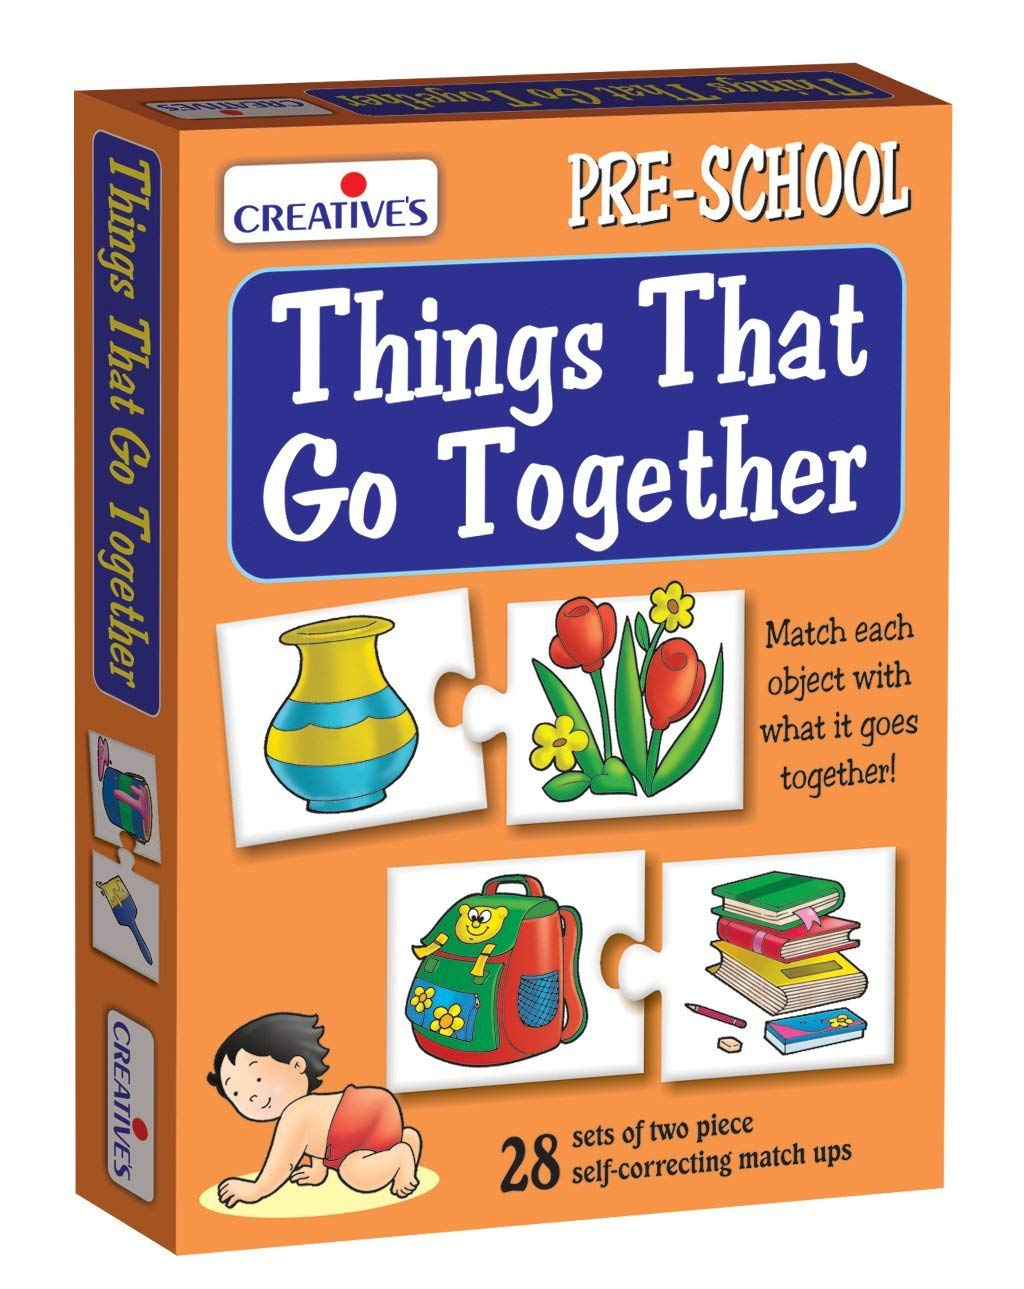 Creative's Things That Go Together Puzzle (Multi-Color, 56 Pieces) product image